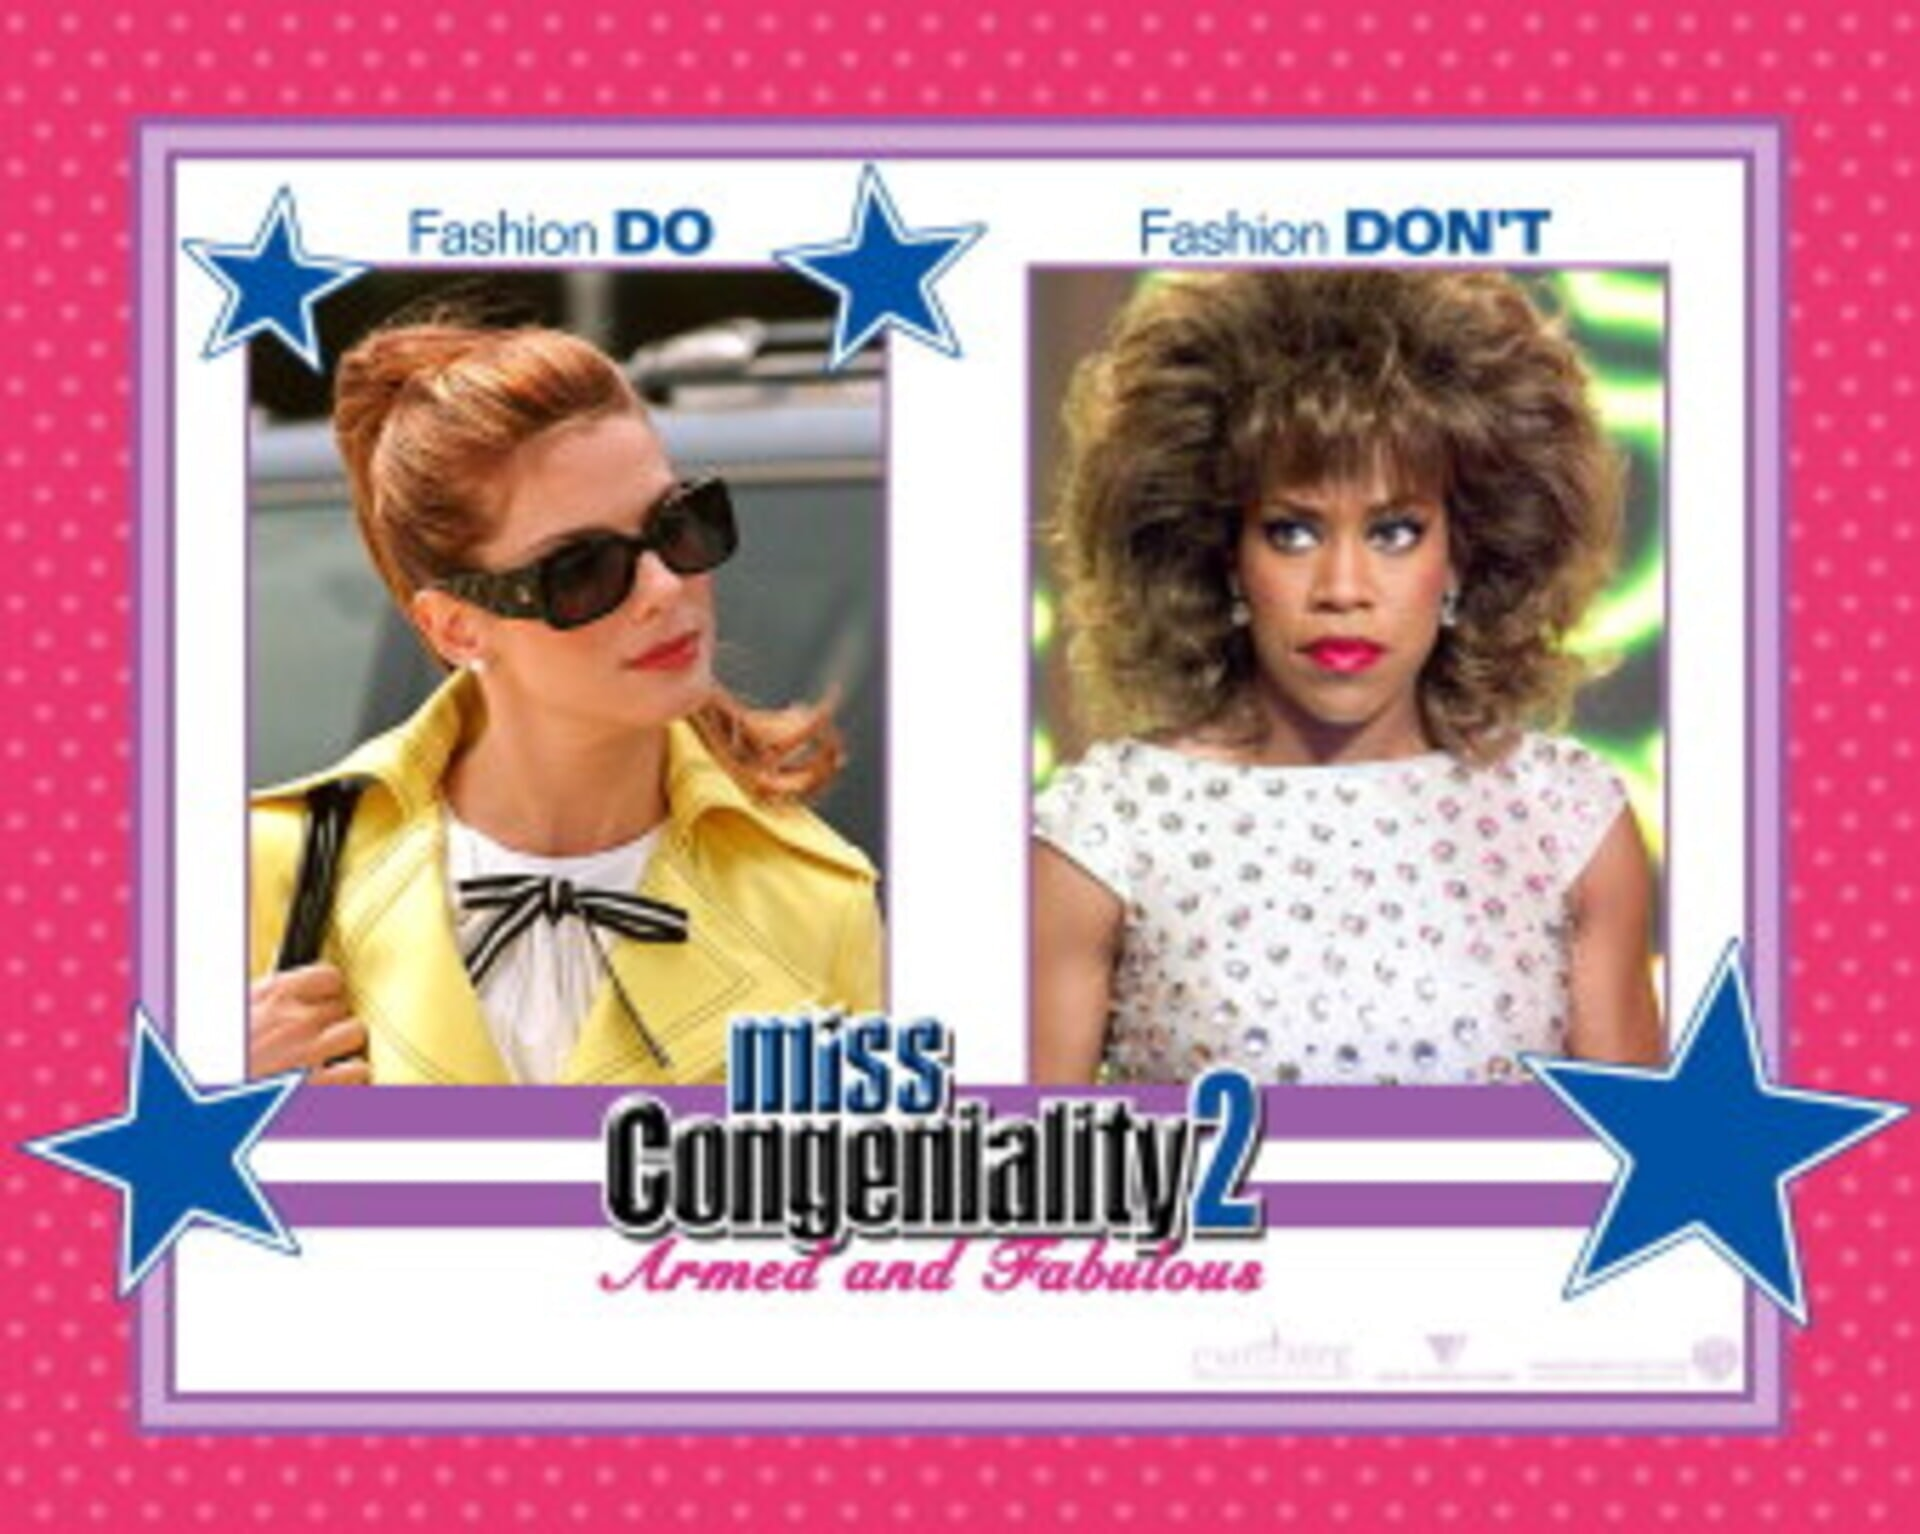 Miss Congeniality 2: Armed and Fabulous - Image 7